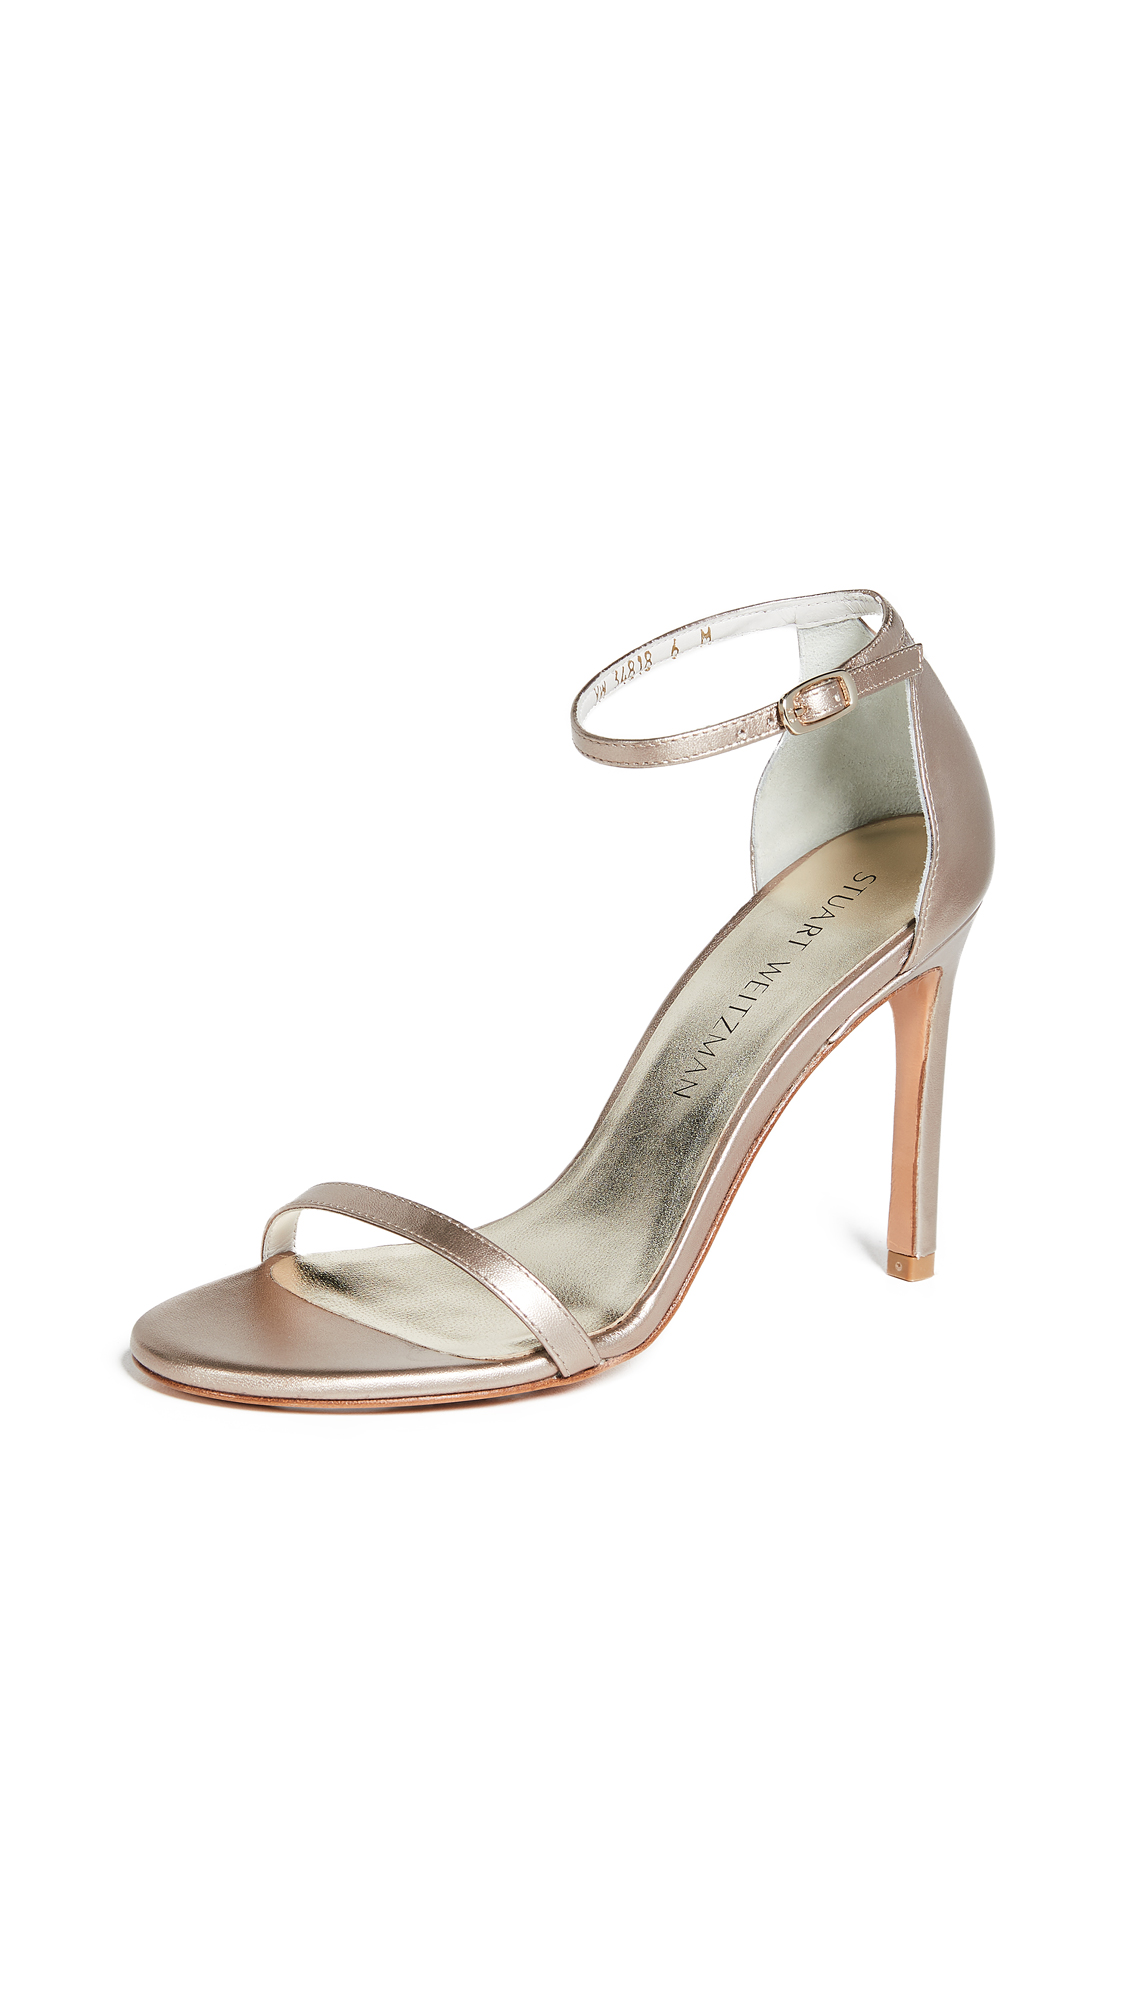 Stuart Weitzman Nudistsong 90mm Sandals - Supple Beige